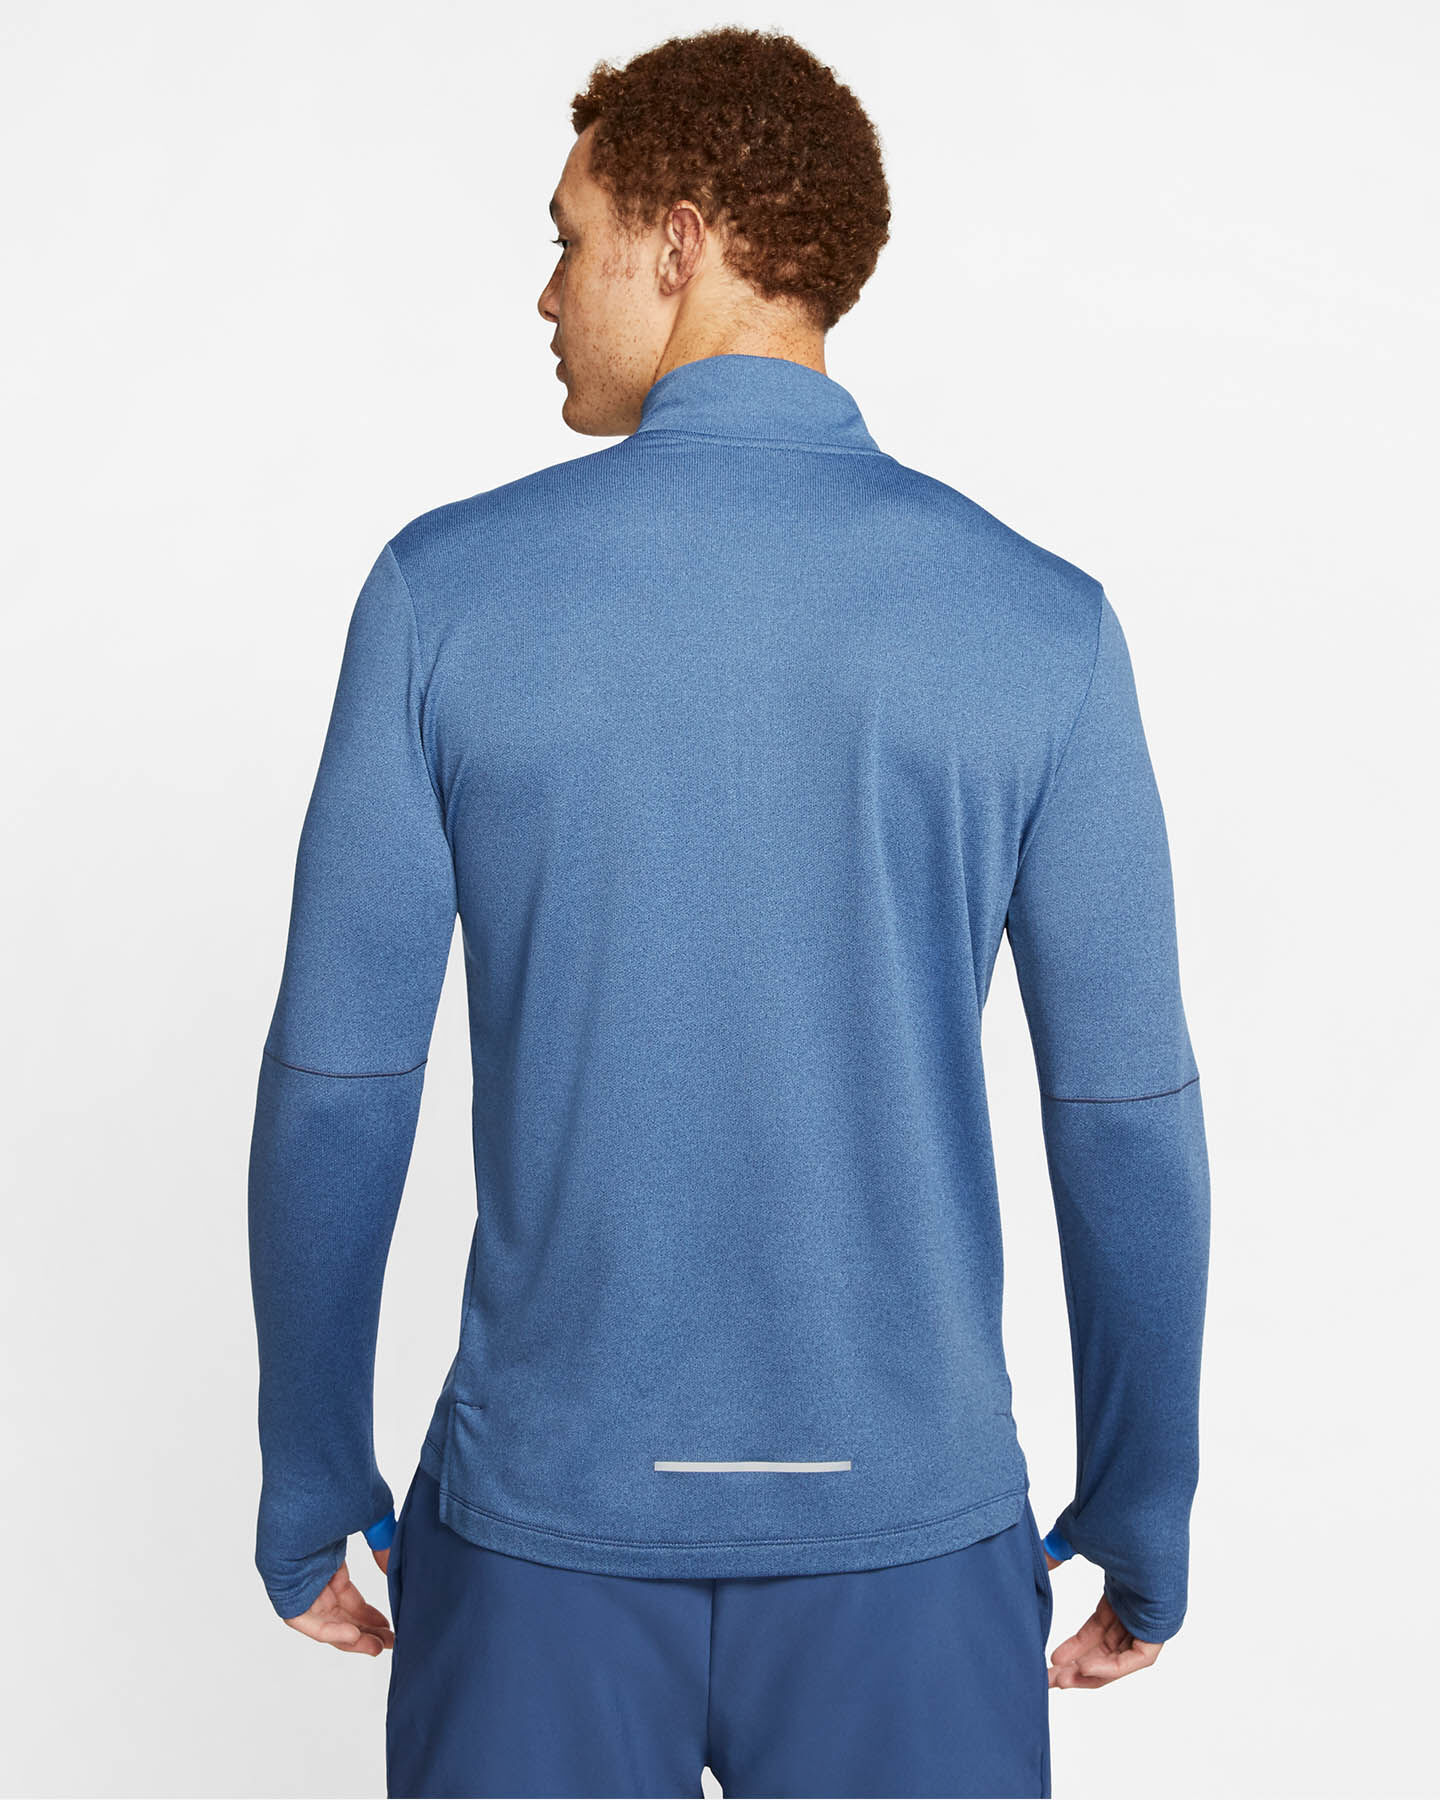 T-Shirt running NIKE ELEMENT 3.0 M S5163140 scatto 3